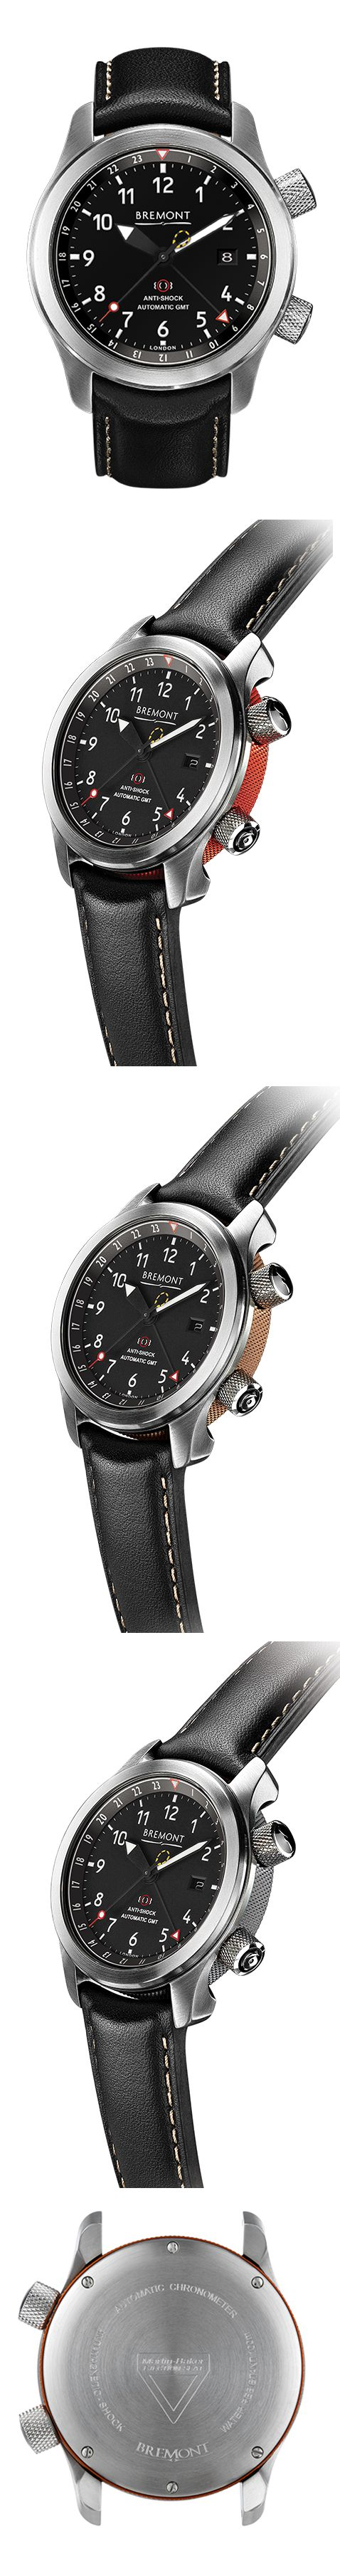 The new Bremont Martin Baker III